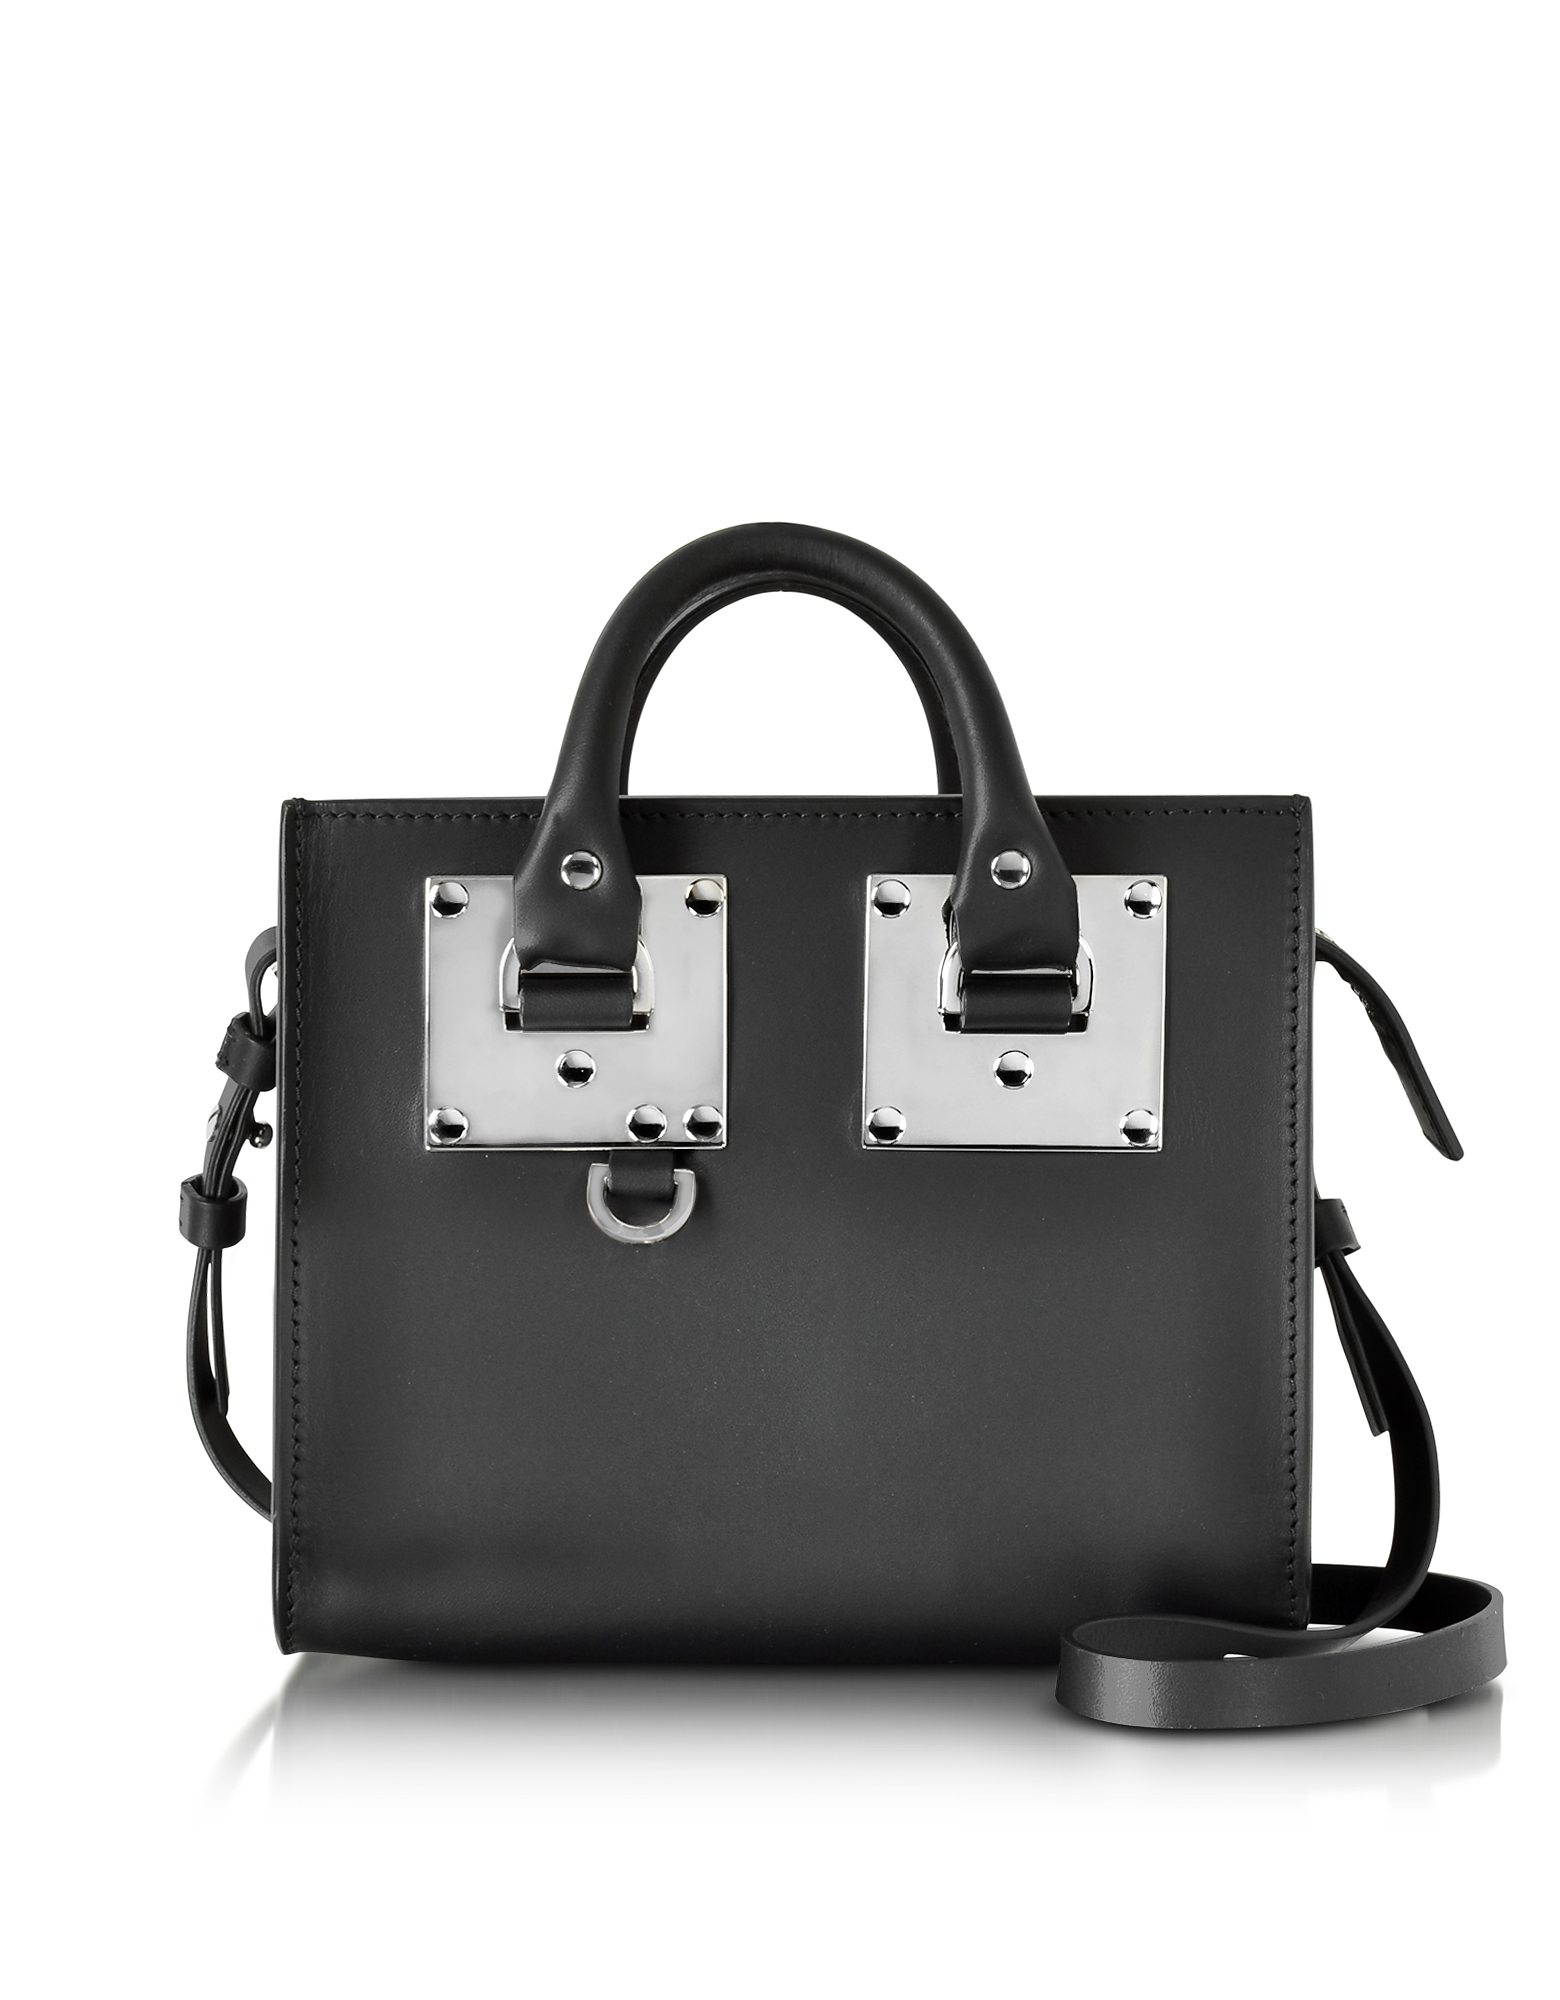 Sophie Hulme Handbags, Black Saddle Leather Albion Box Tote Bag